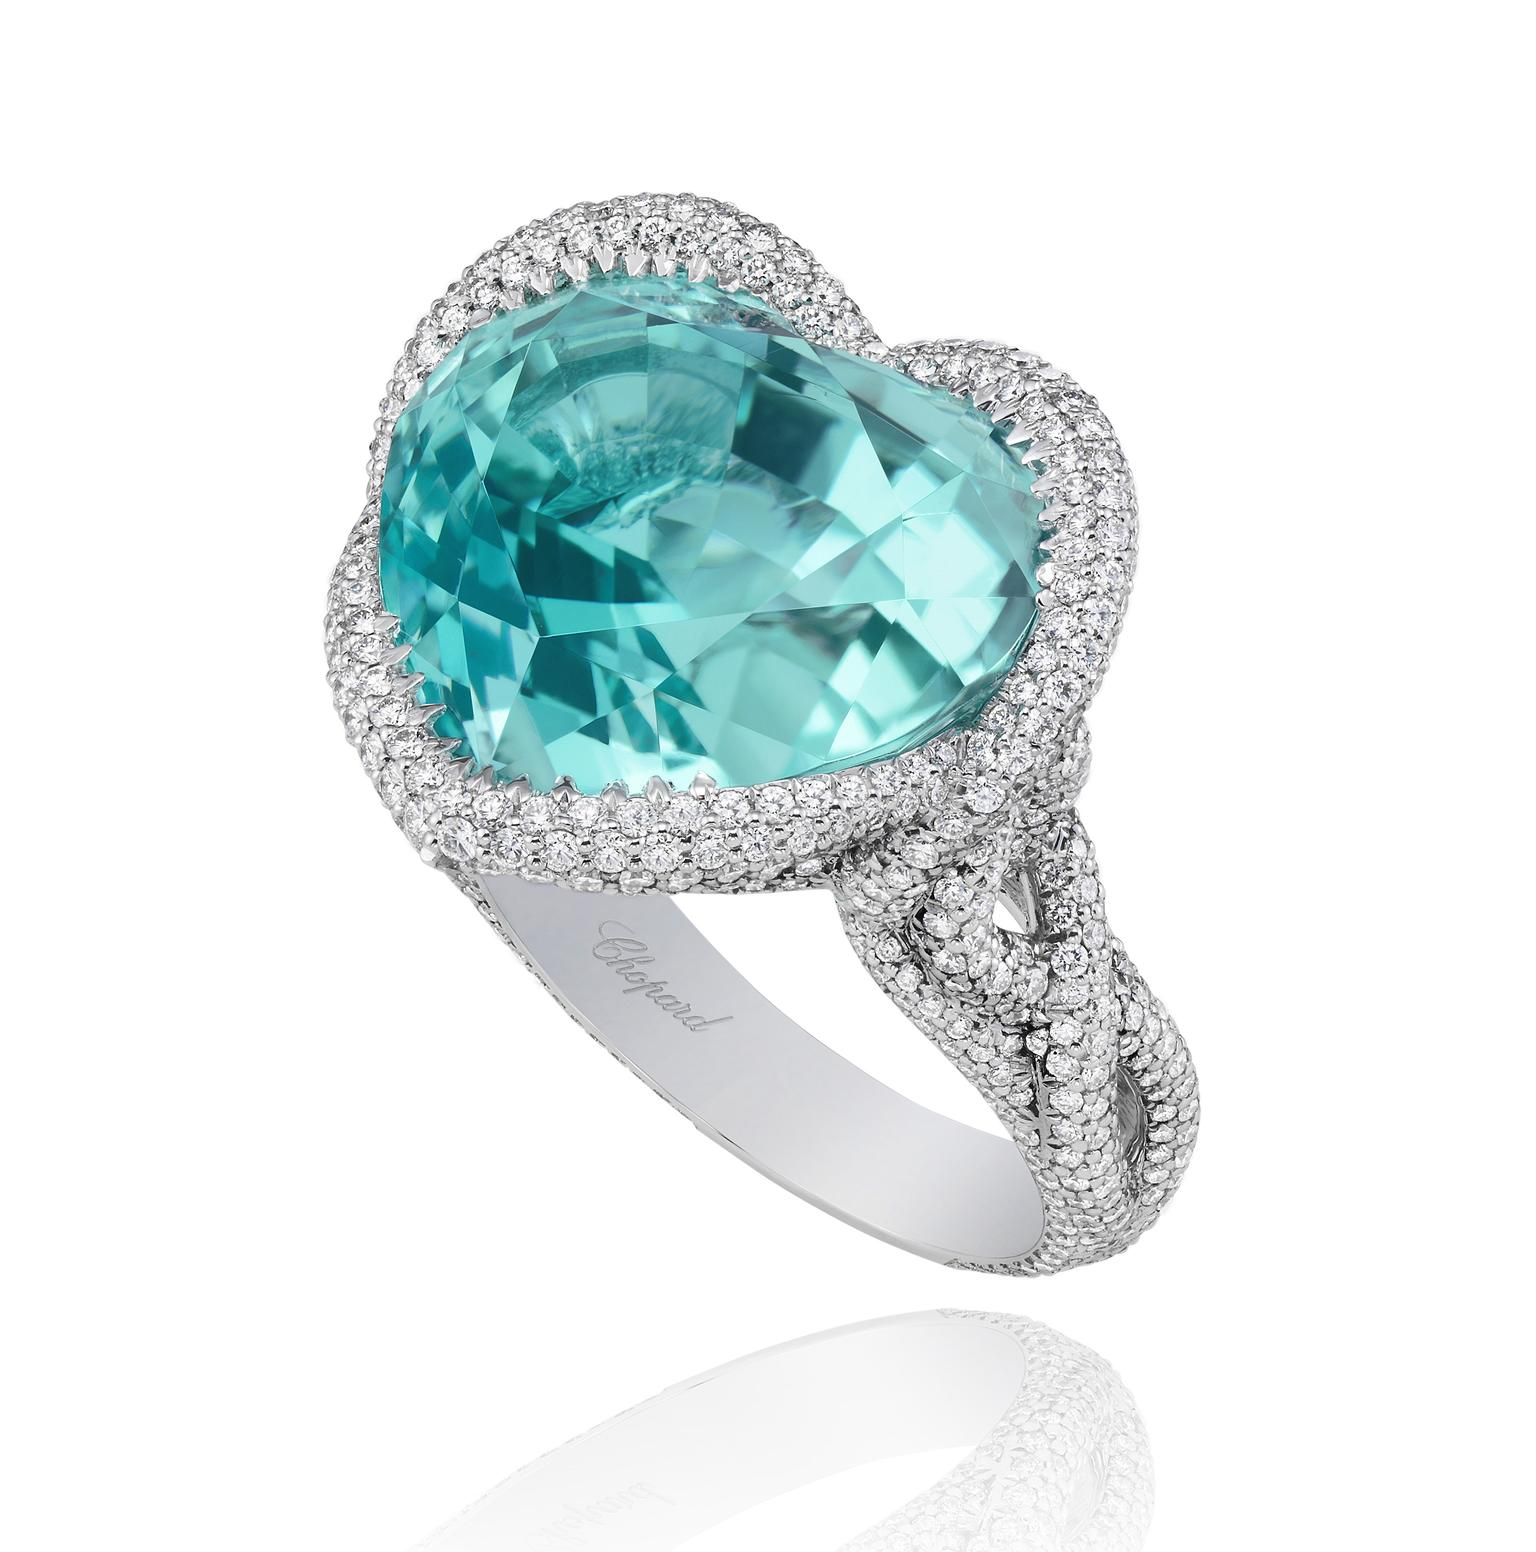 Chopard-Paraiba-Tourmaline--Ring-from-the-Red-Carpet-Collection-2013.jpg